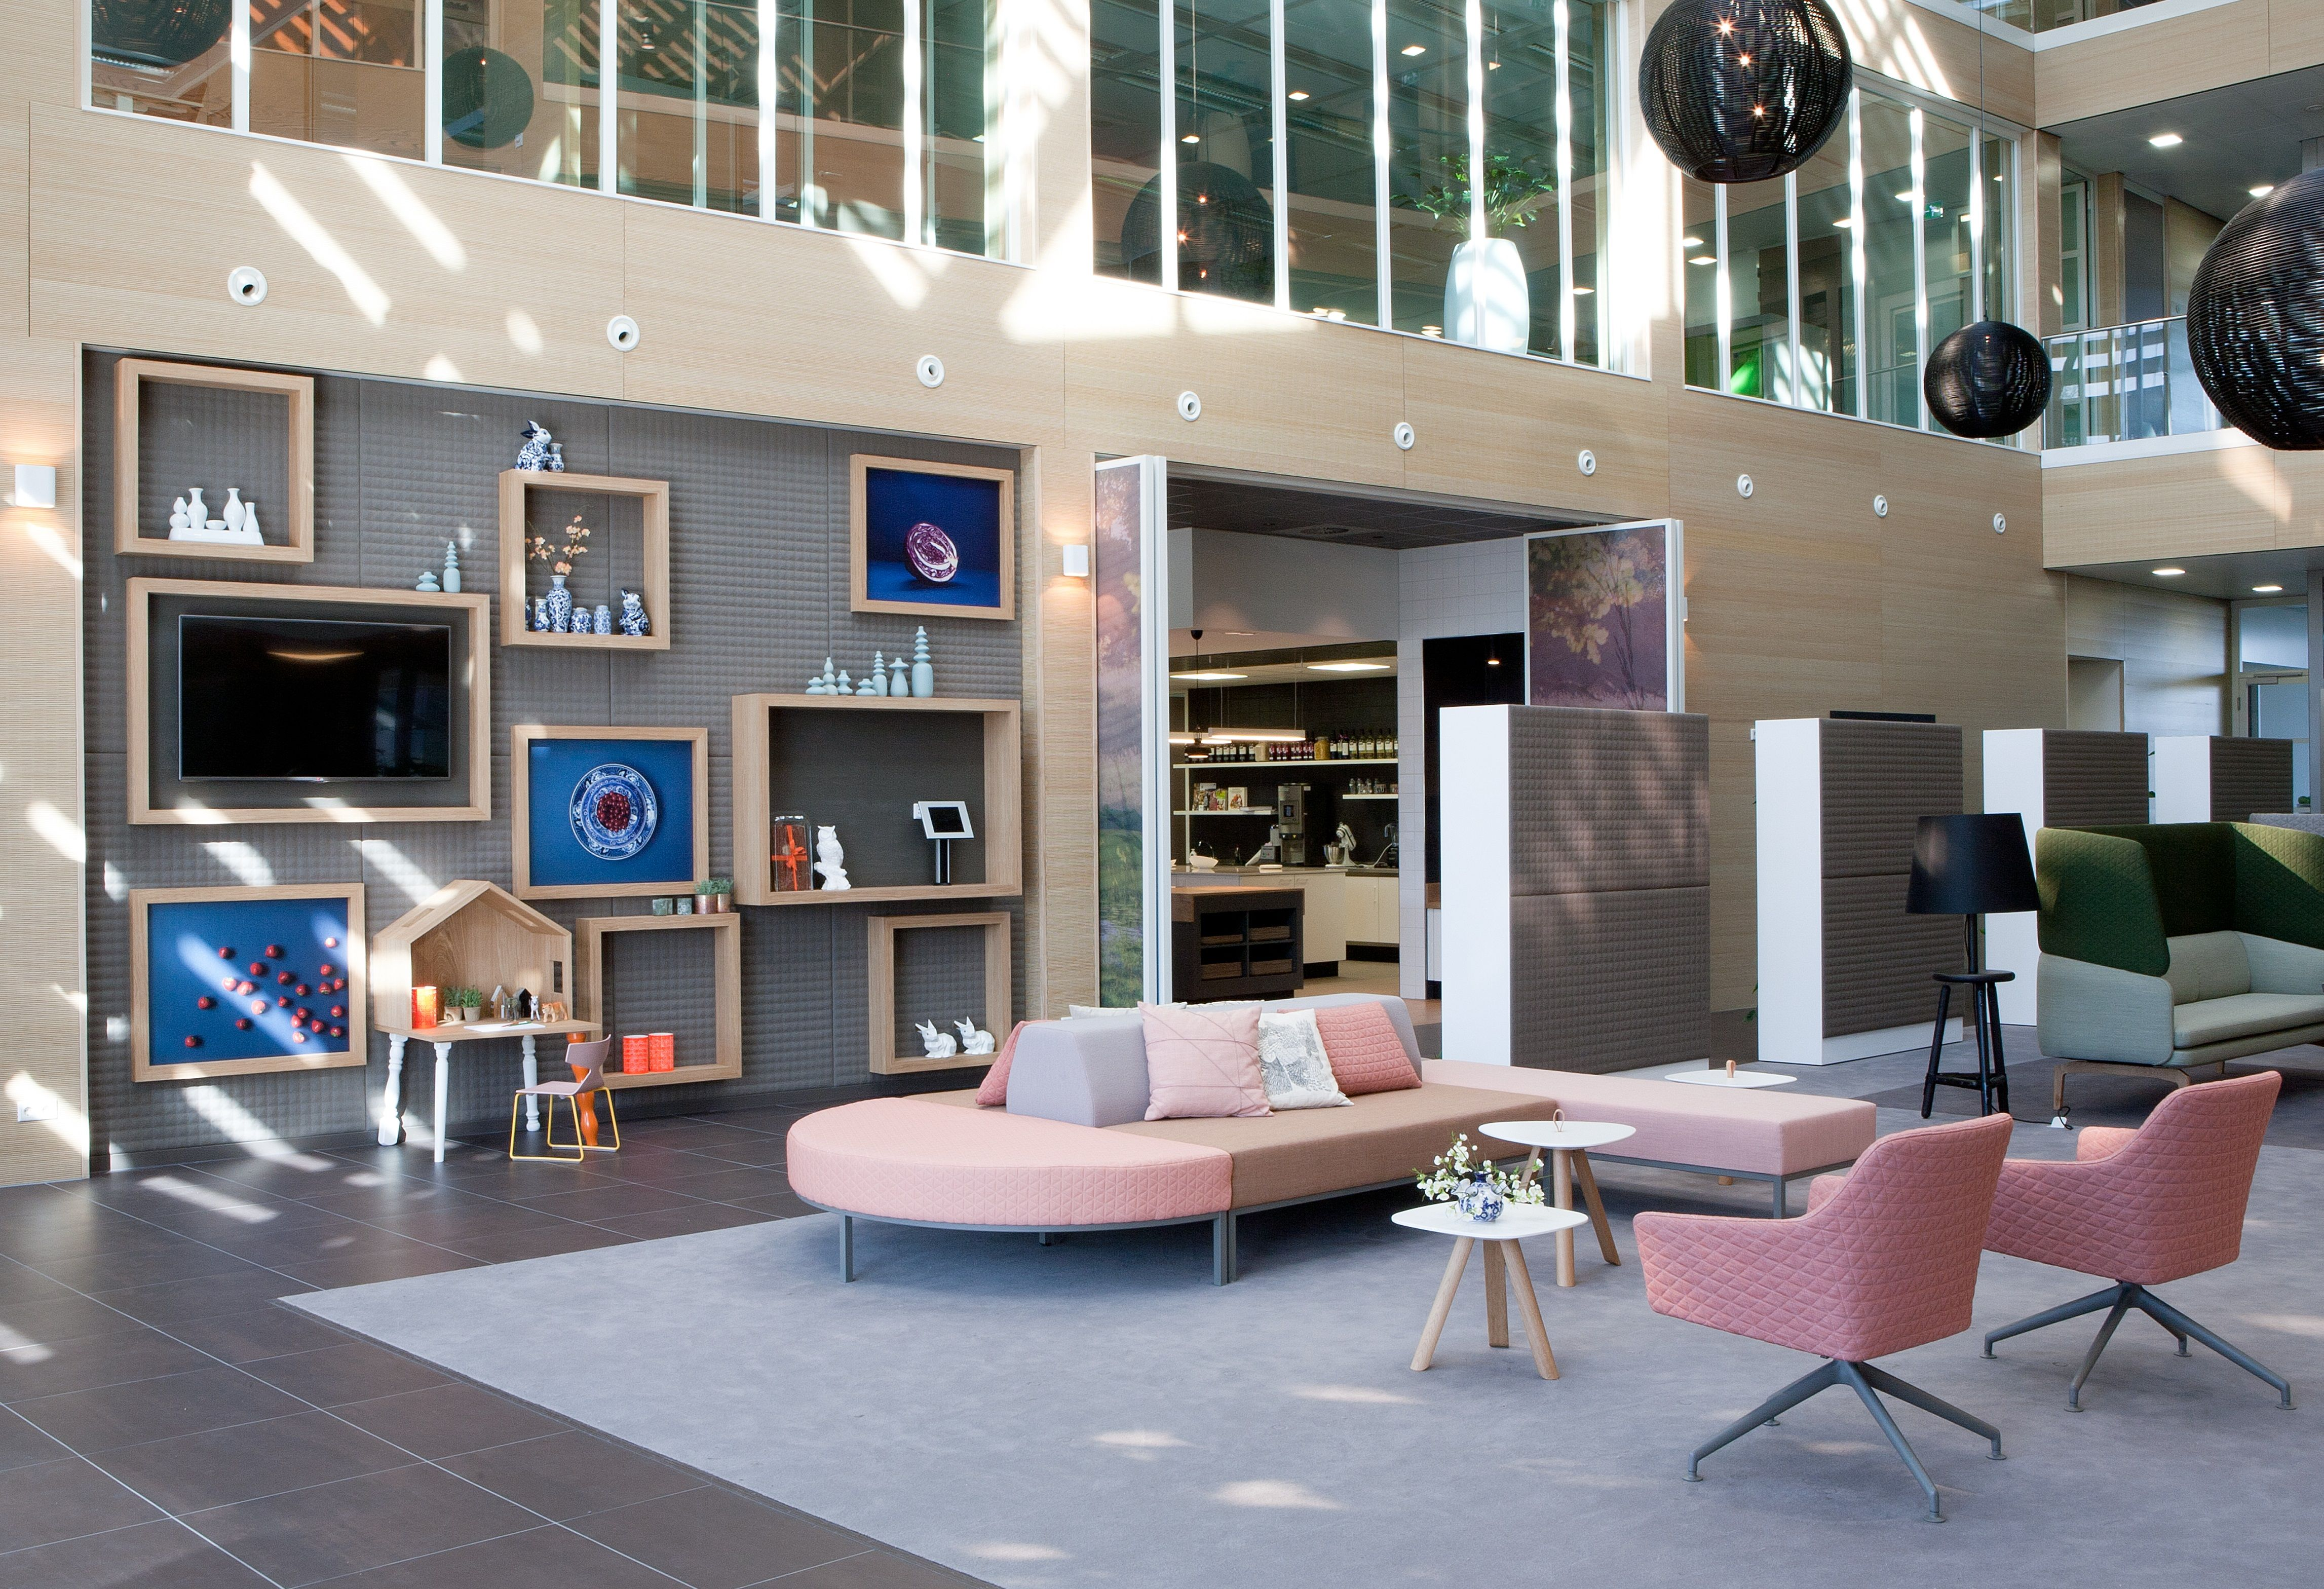 The Foam Fabrics walls and cabinets in Rabobank - Hardenberg